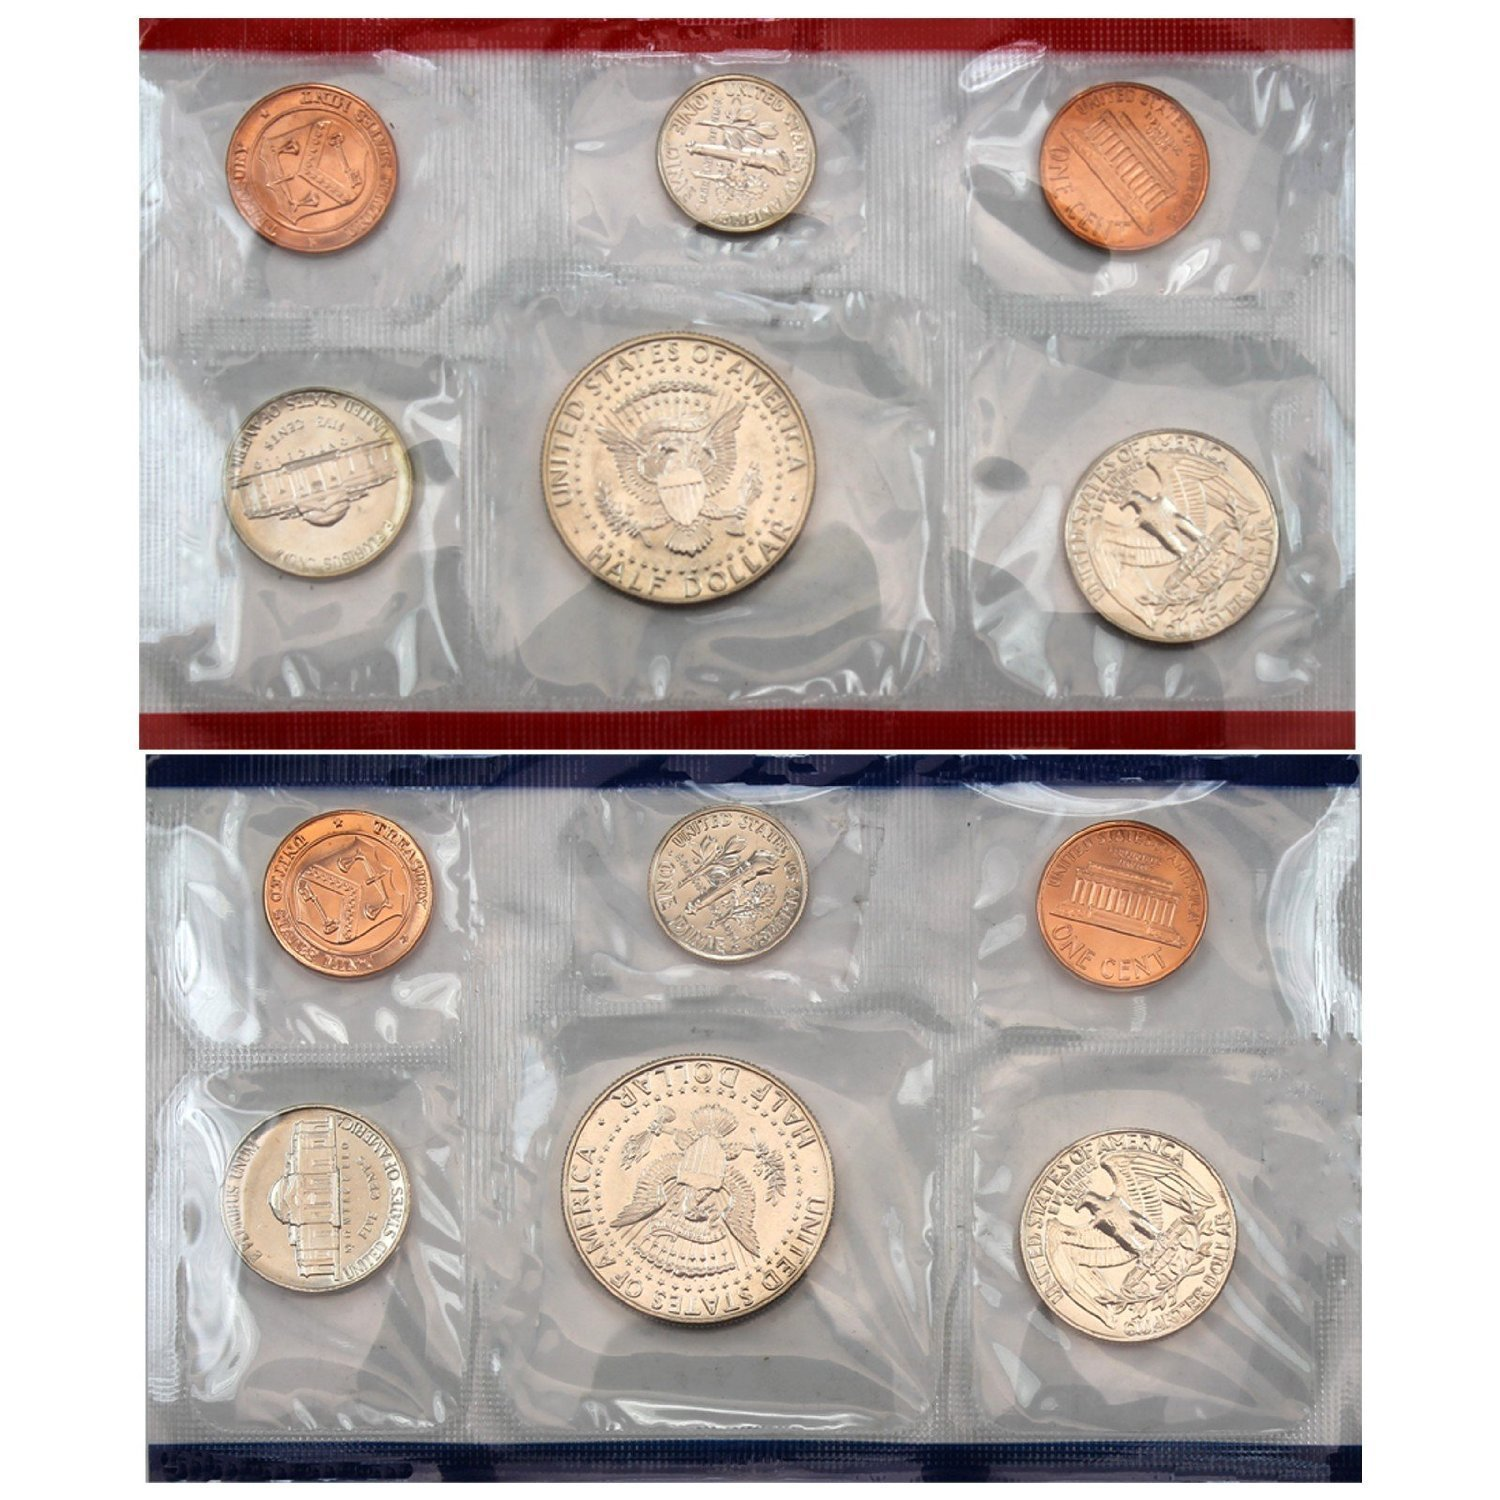 1995 Various Mint Marks P /& D United States US Mint 10 Coin Uncirculated Mint Set Uncirculated